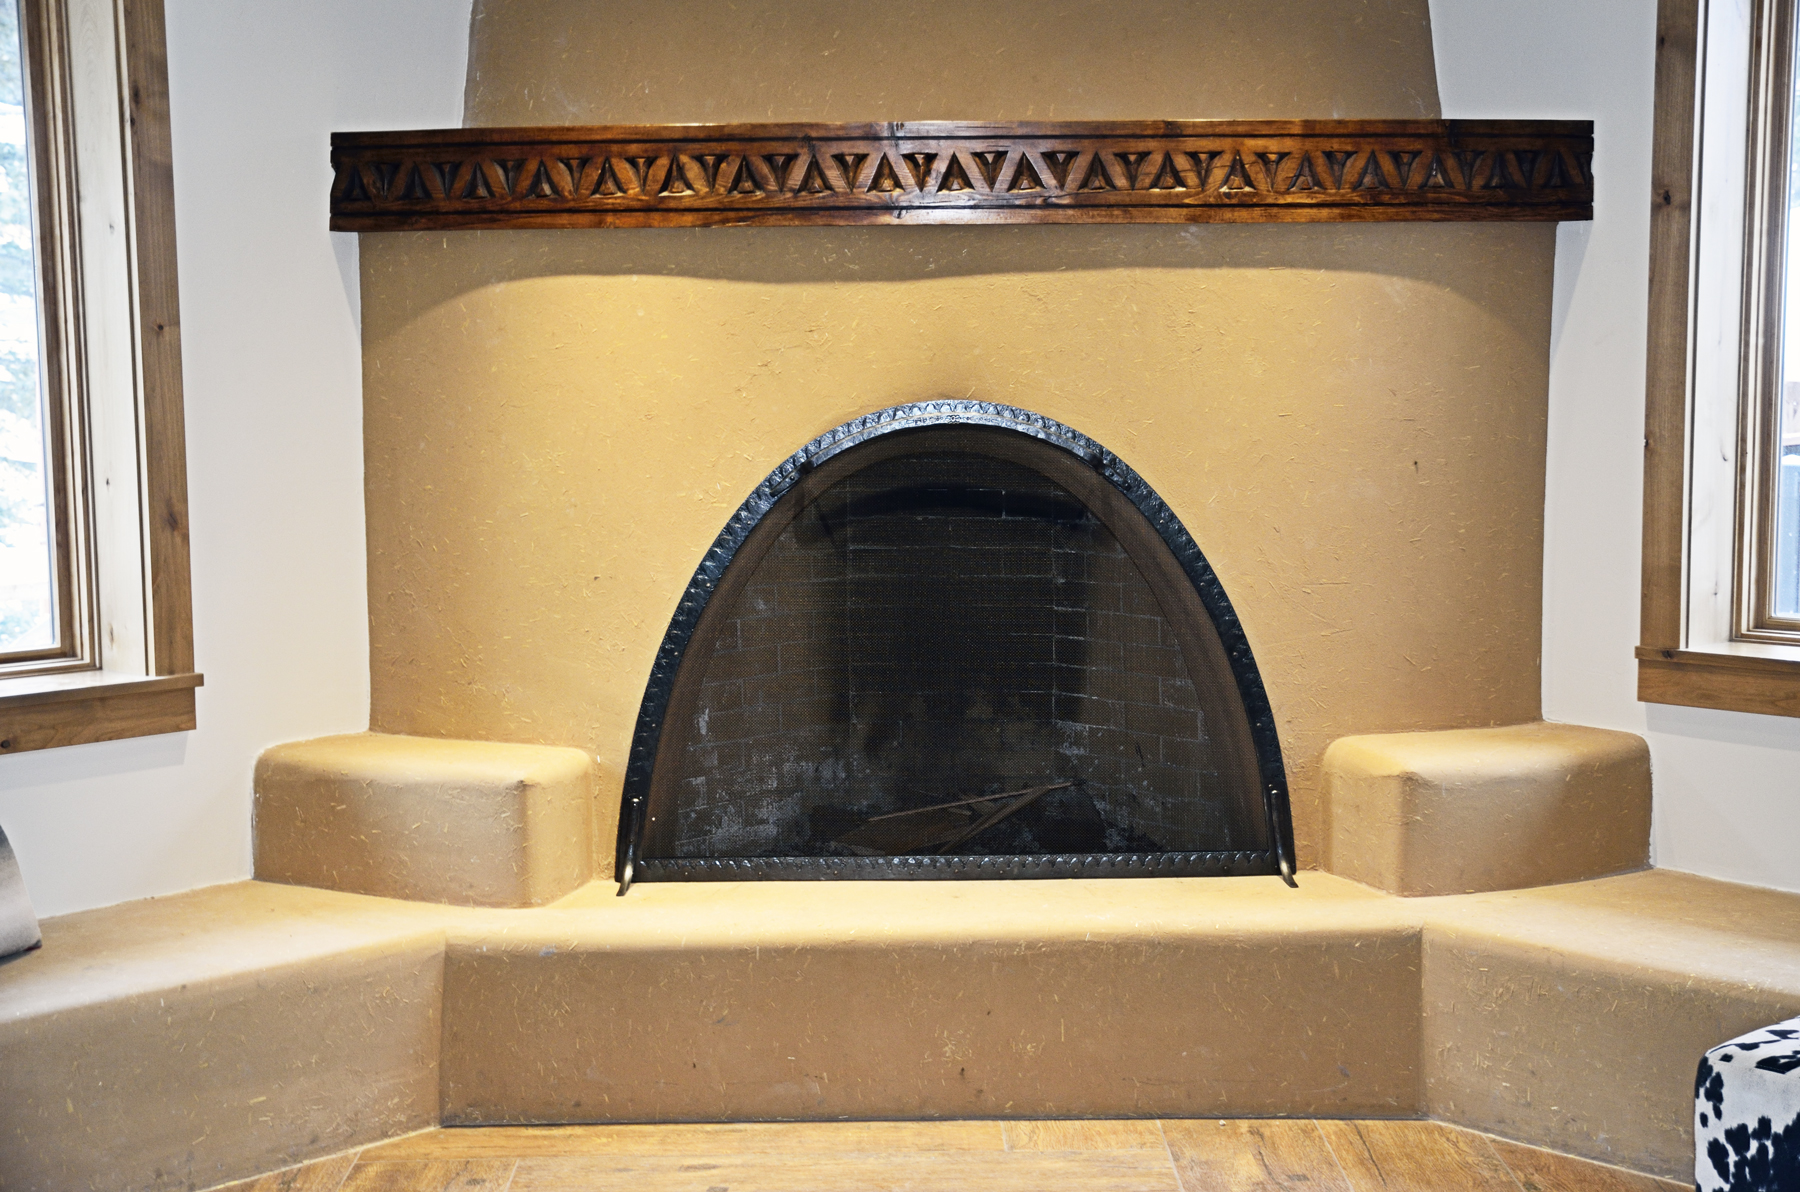 Fireplace Ironwork / David Larson, Artist, Santa Fe, New ...